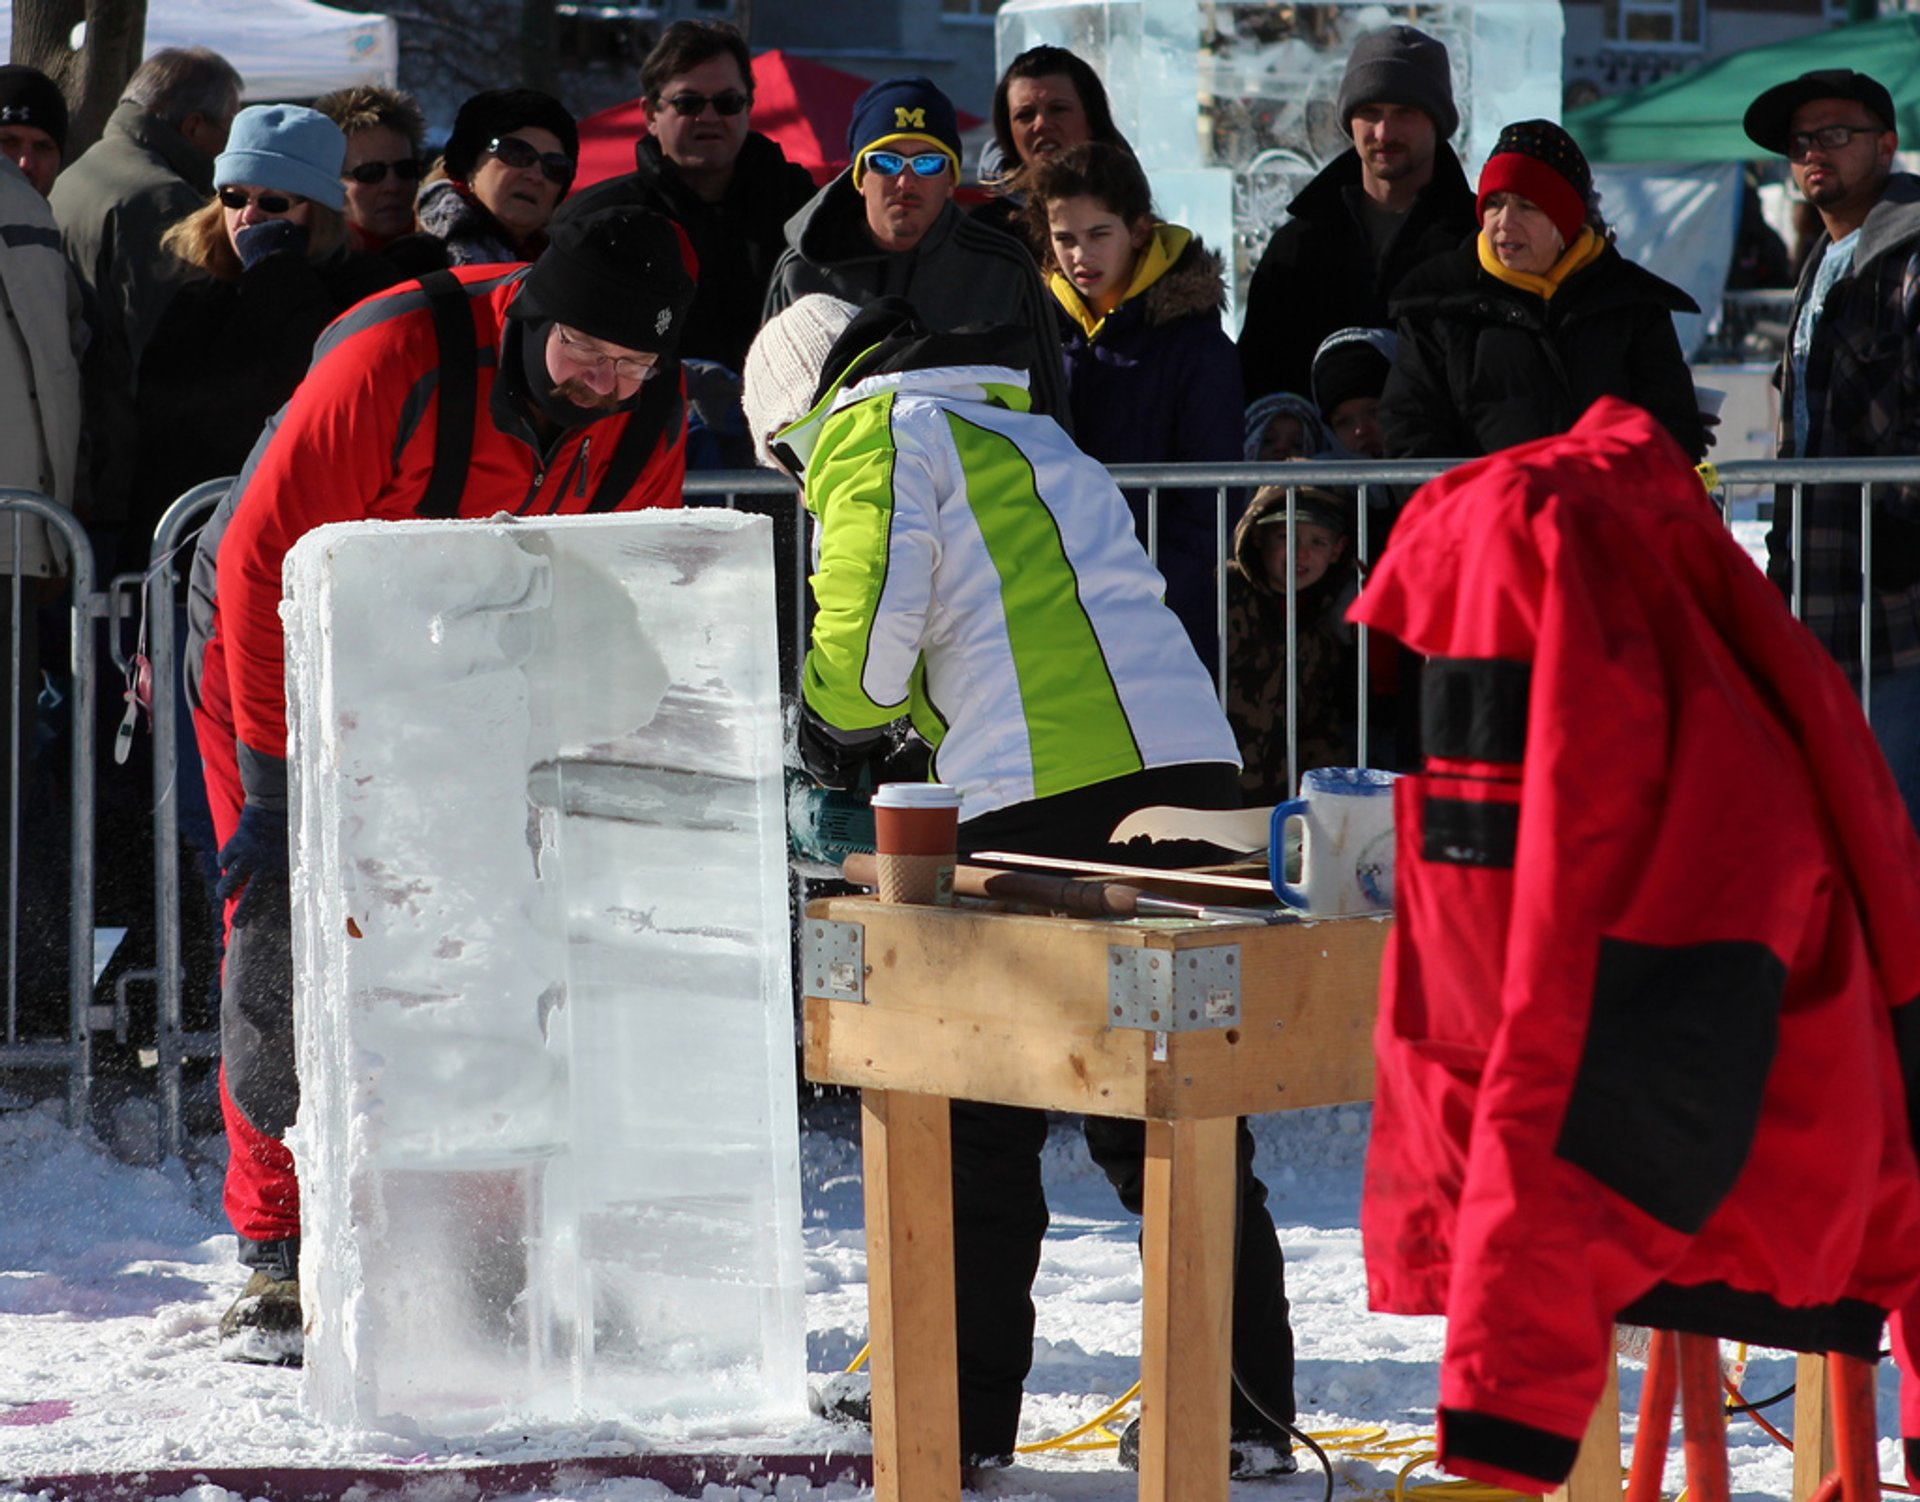 Plymouth Ice Festival in Midwest - Best Season 2020